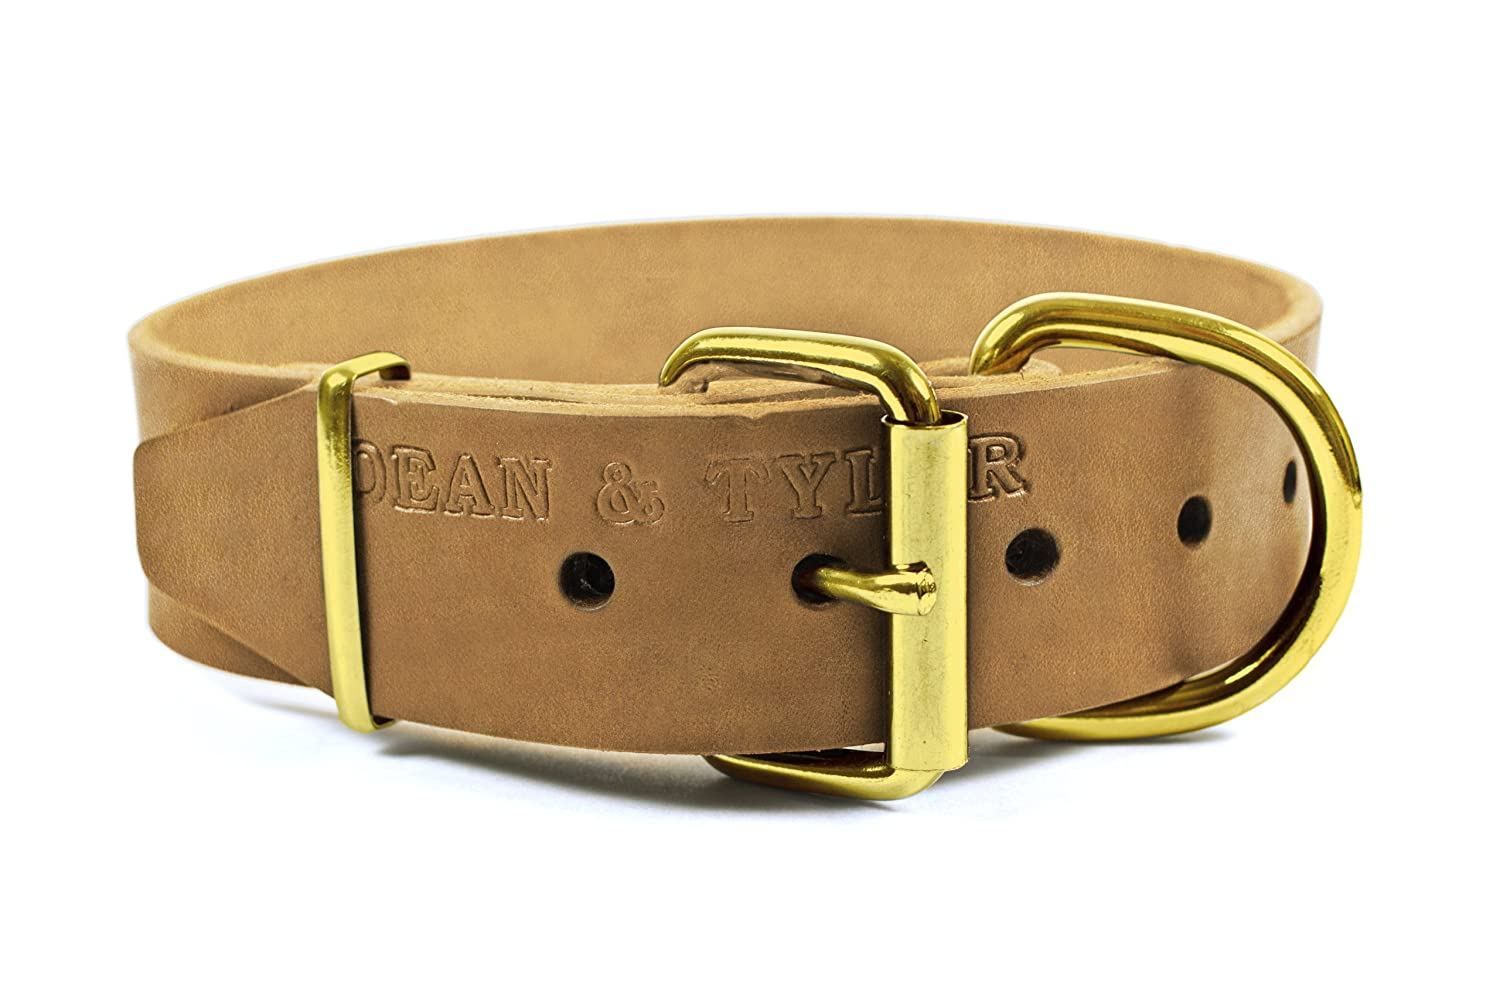 Dean and Tyler B and B , Basic Leather Dog Collar with Solid Brass Hardware Tan Size 18-Inch by 1-1 2-Inch Fits Neck 16-Inch to 20-Inch